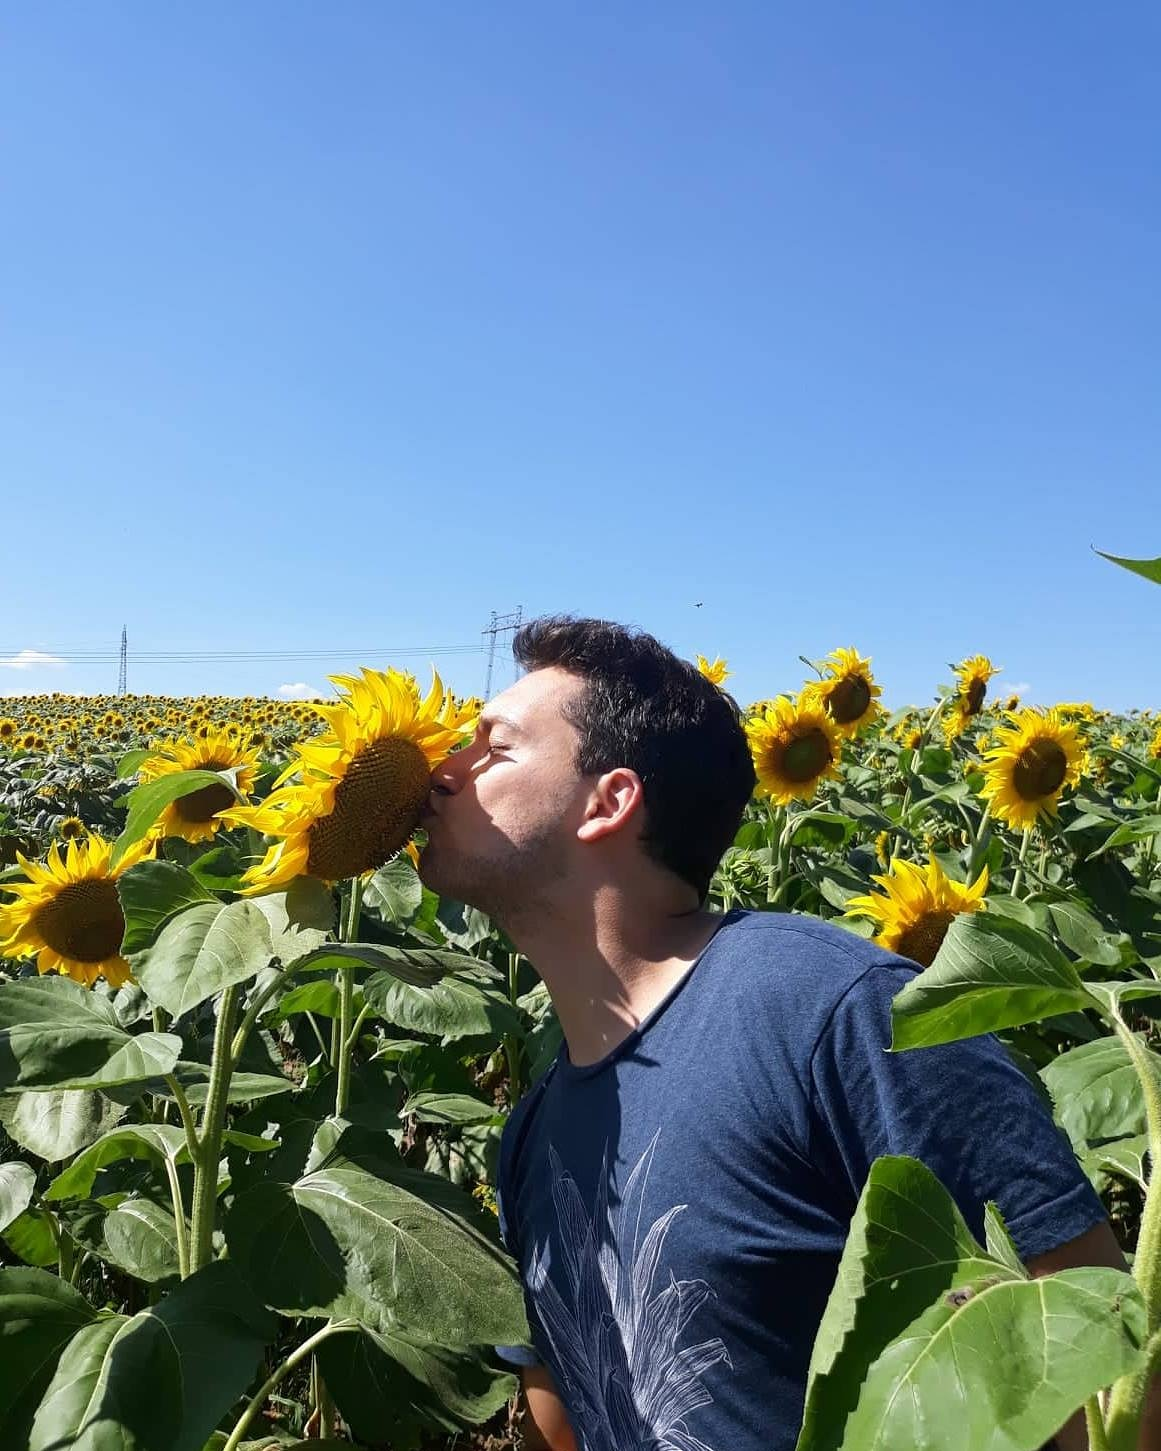 Yes, I am making out with this one 🌻